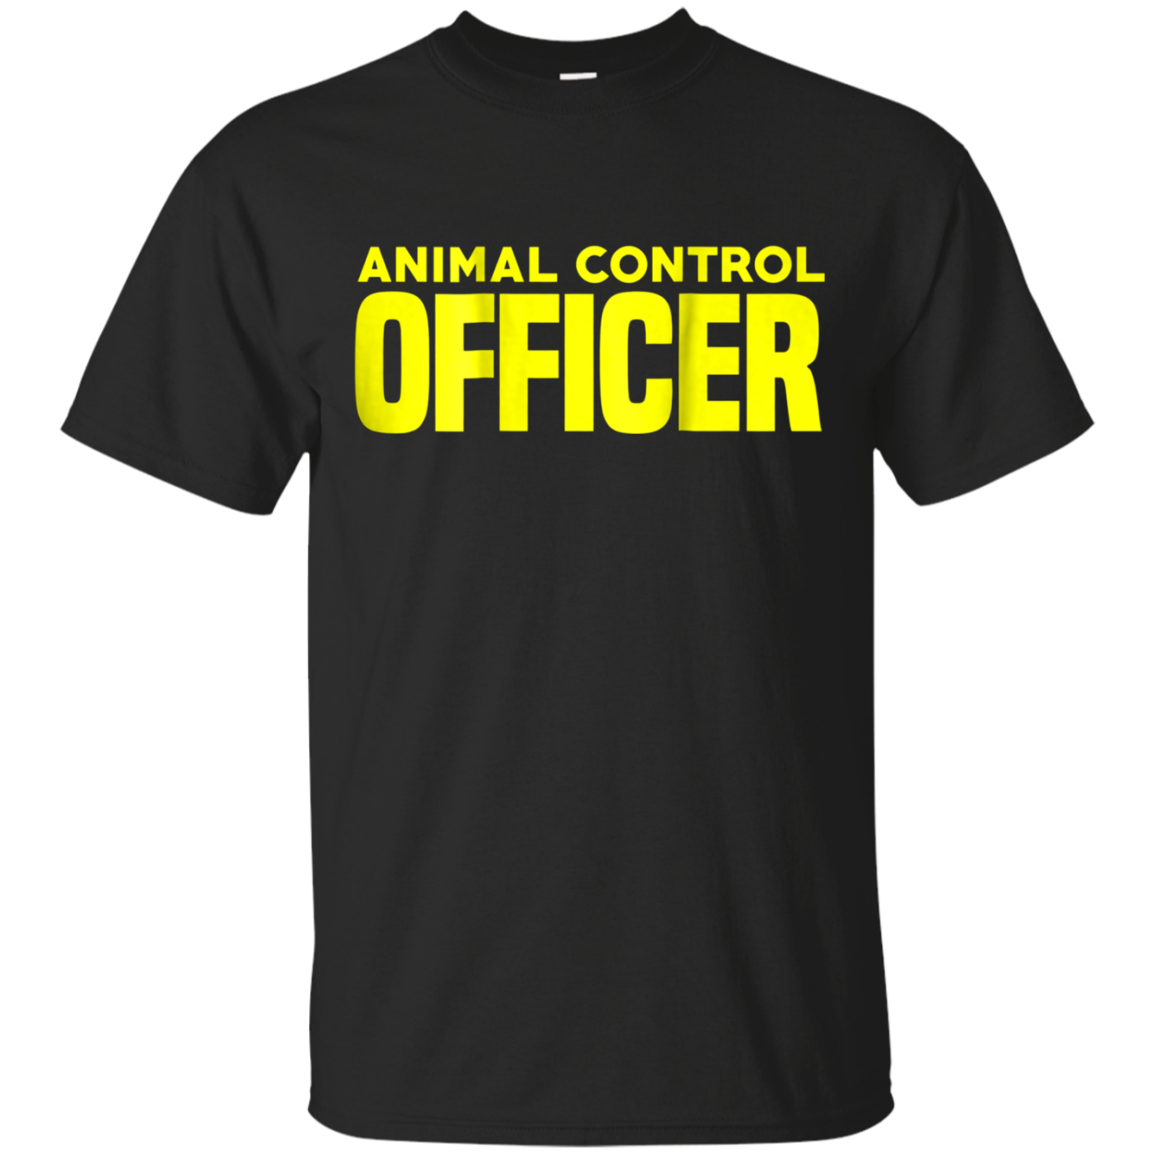 Animal Control Officer Public Safety Uniform Patrol T-Shirt